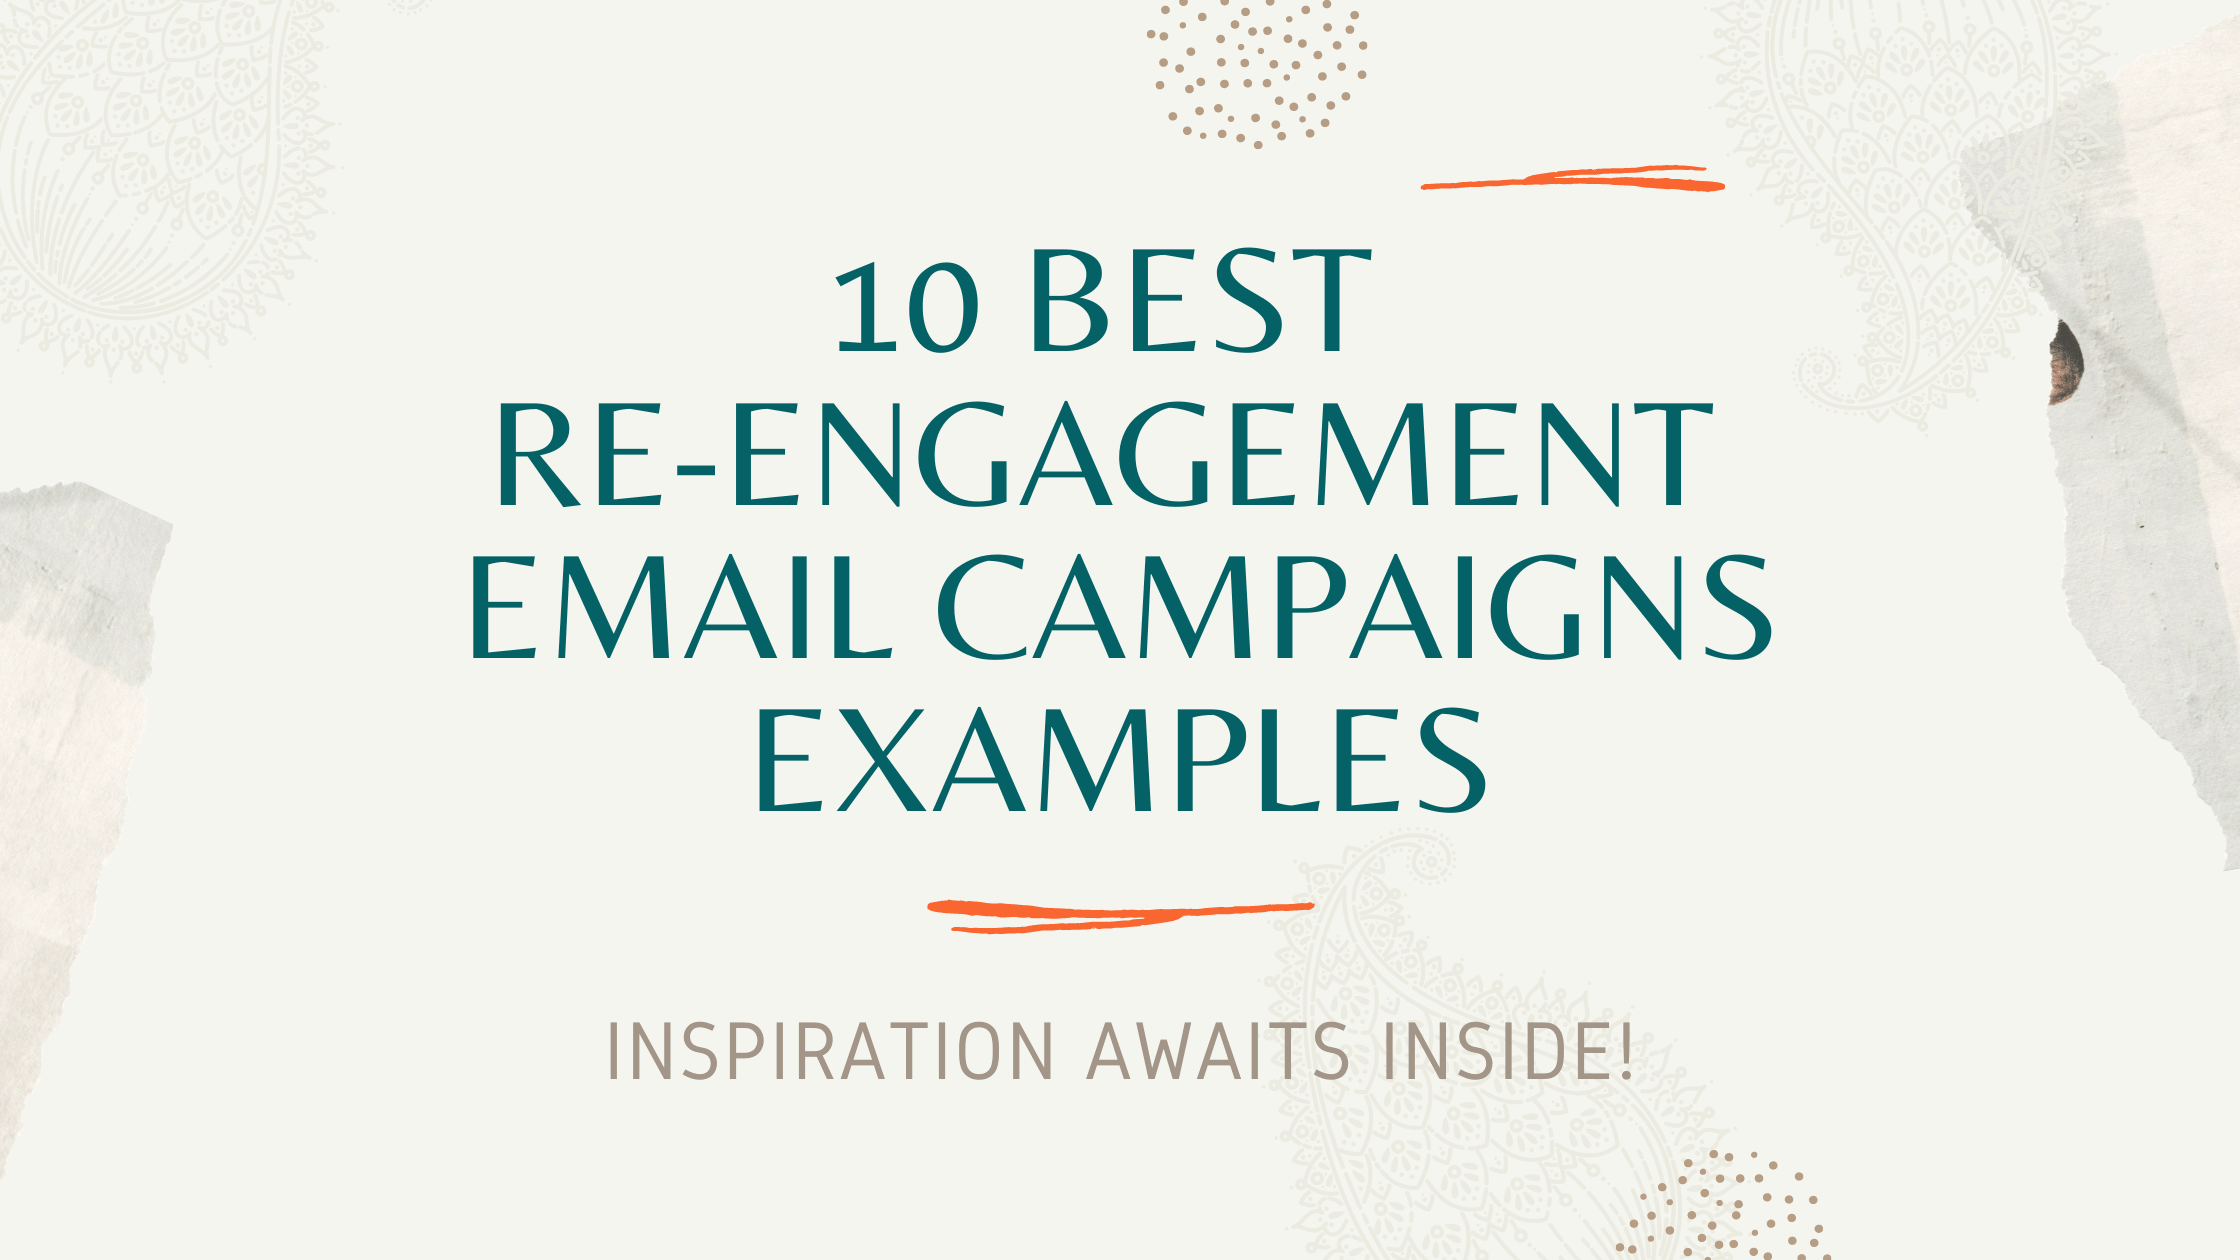 10 Best Re-Engagement Email Campaigns Examples